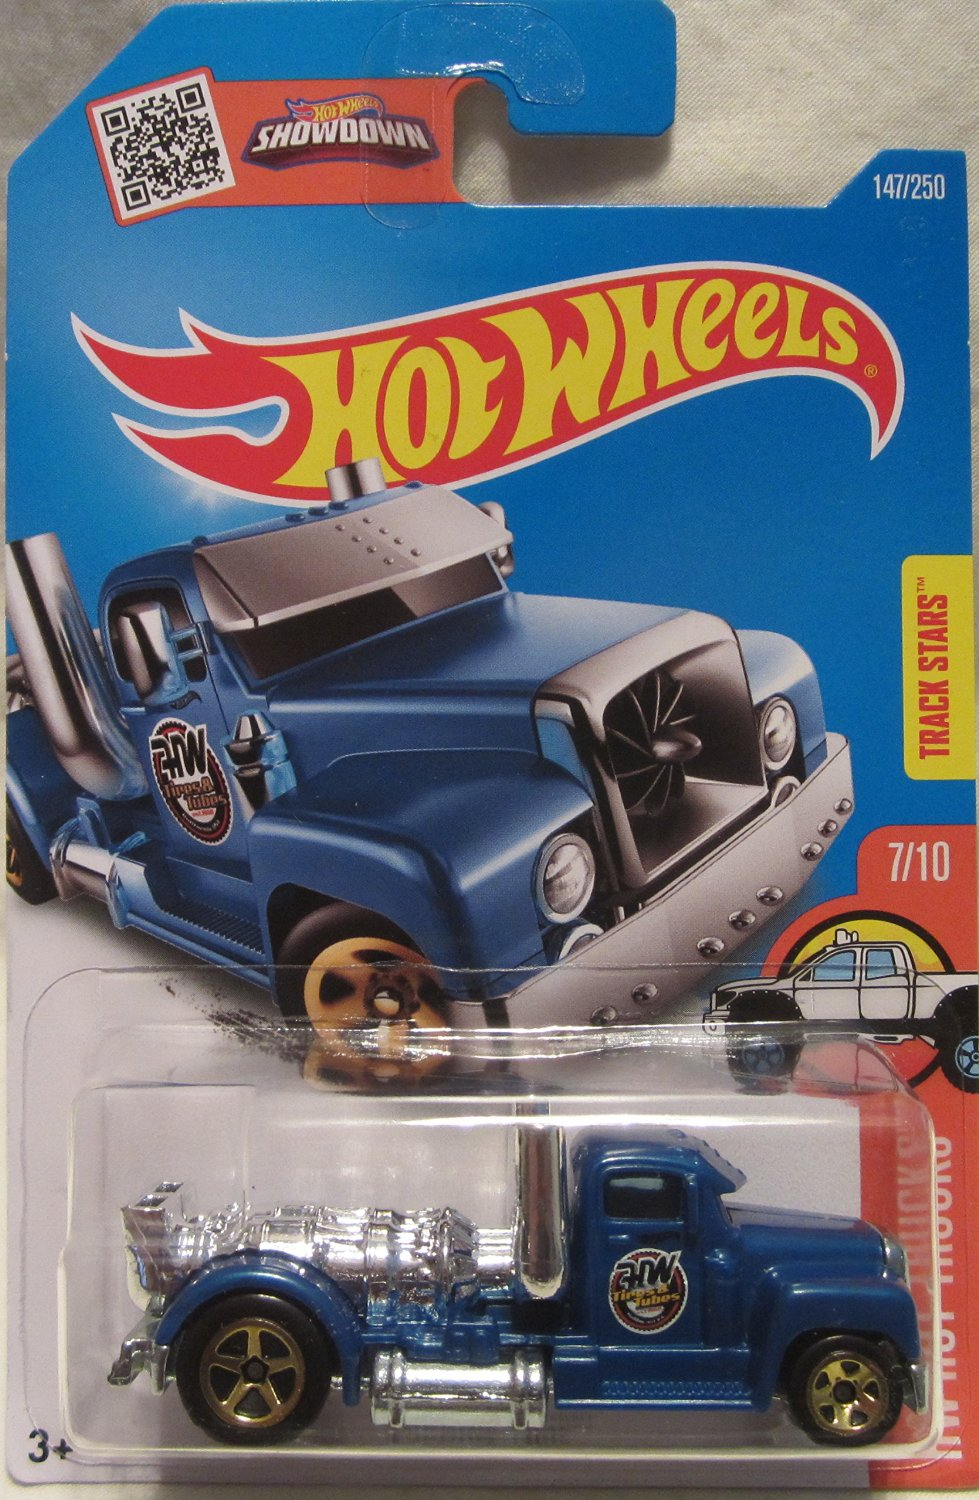 Hot Wheels 2016 HW Hot Trucks Series Turbine Time Blue 1:64 Scale Collectible Die Cast Metal Toy Car Model #7/10 on International Long Card